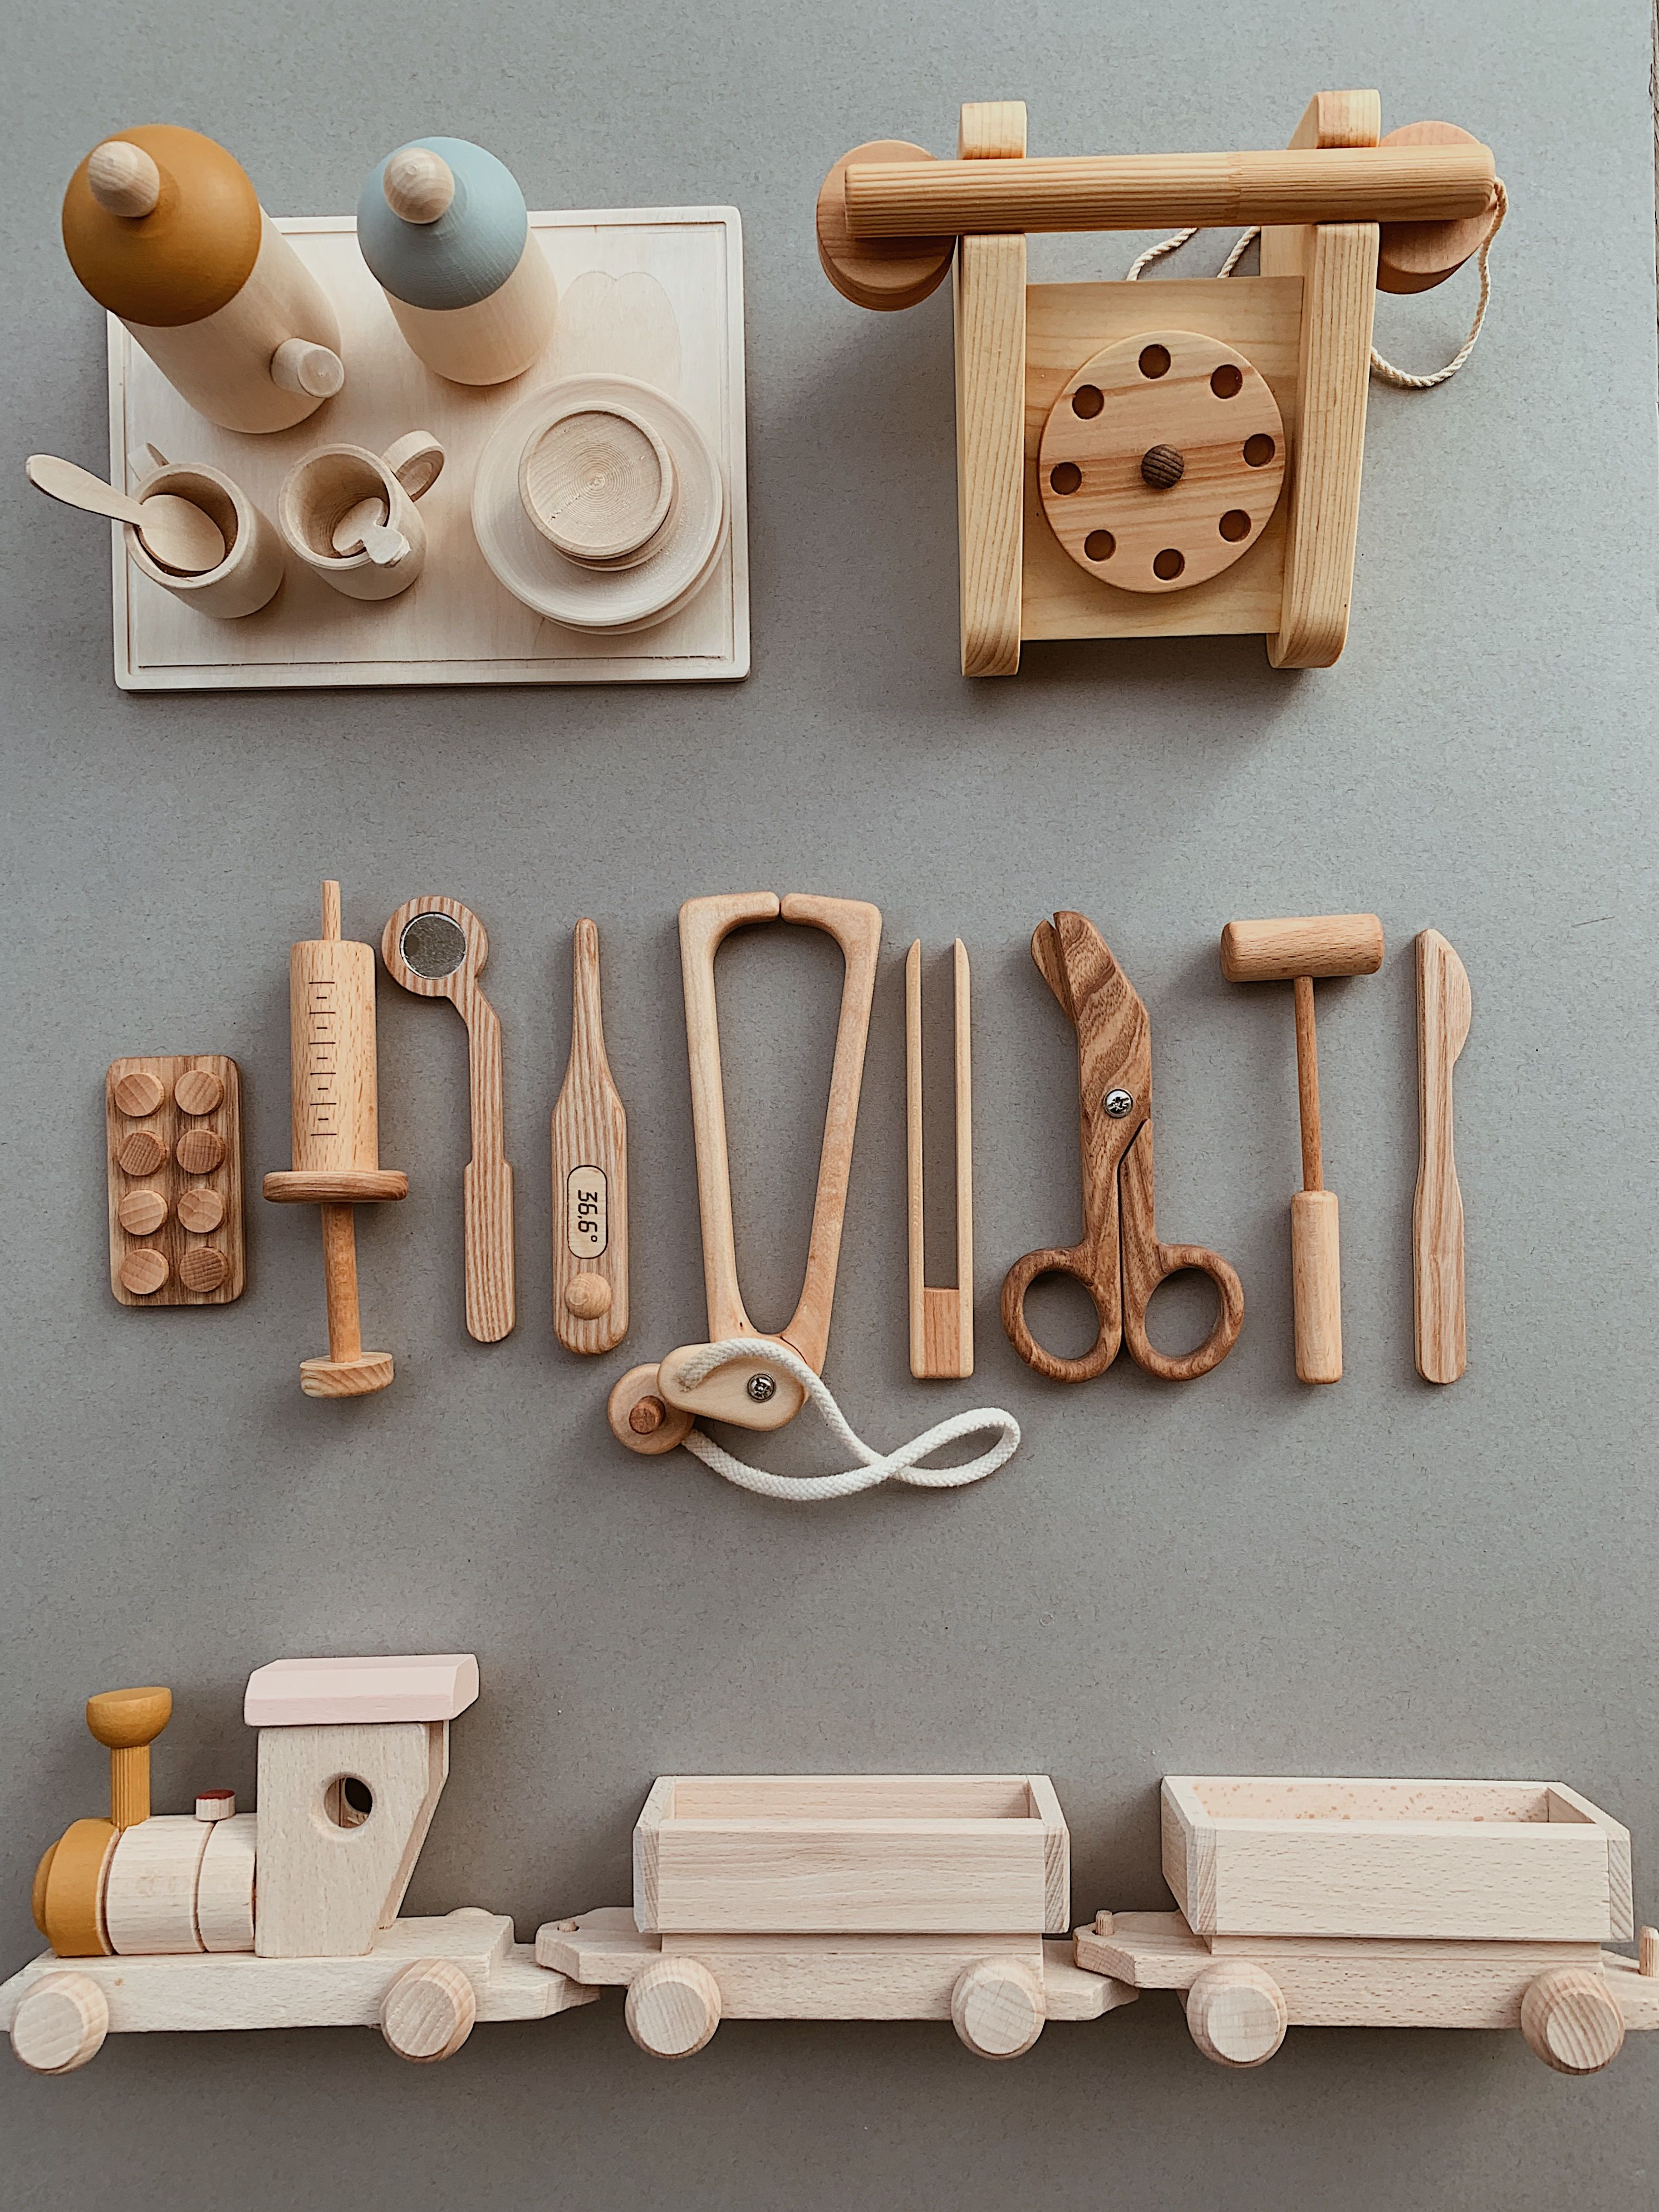 Handcrafted, ethical, natural wooden toys - online store Happy Little Folks